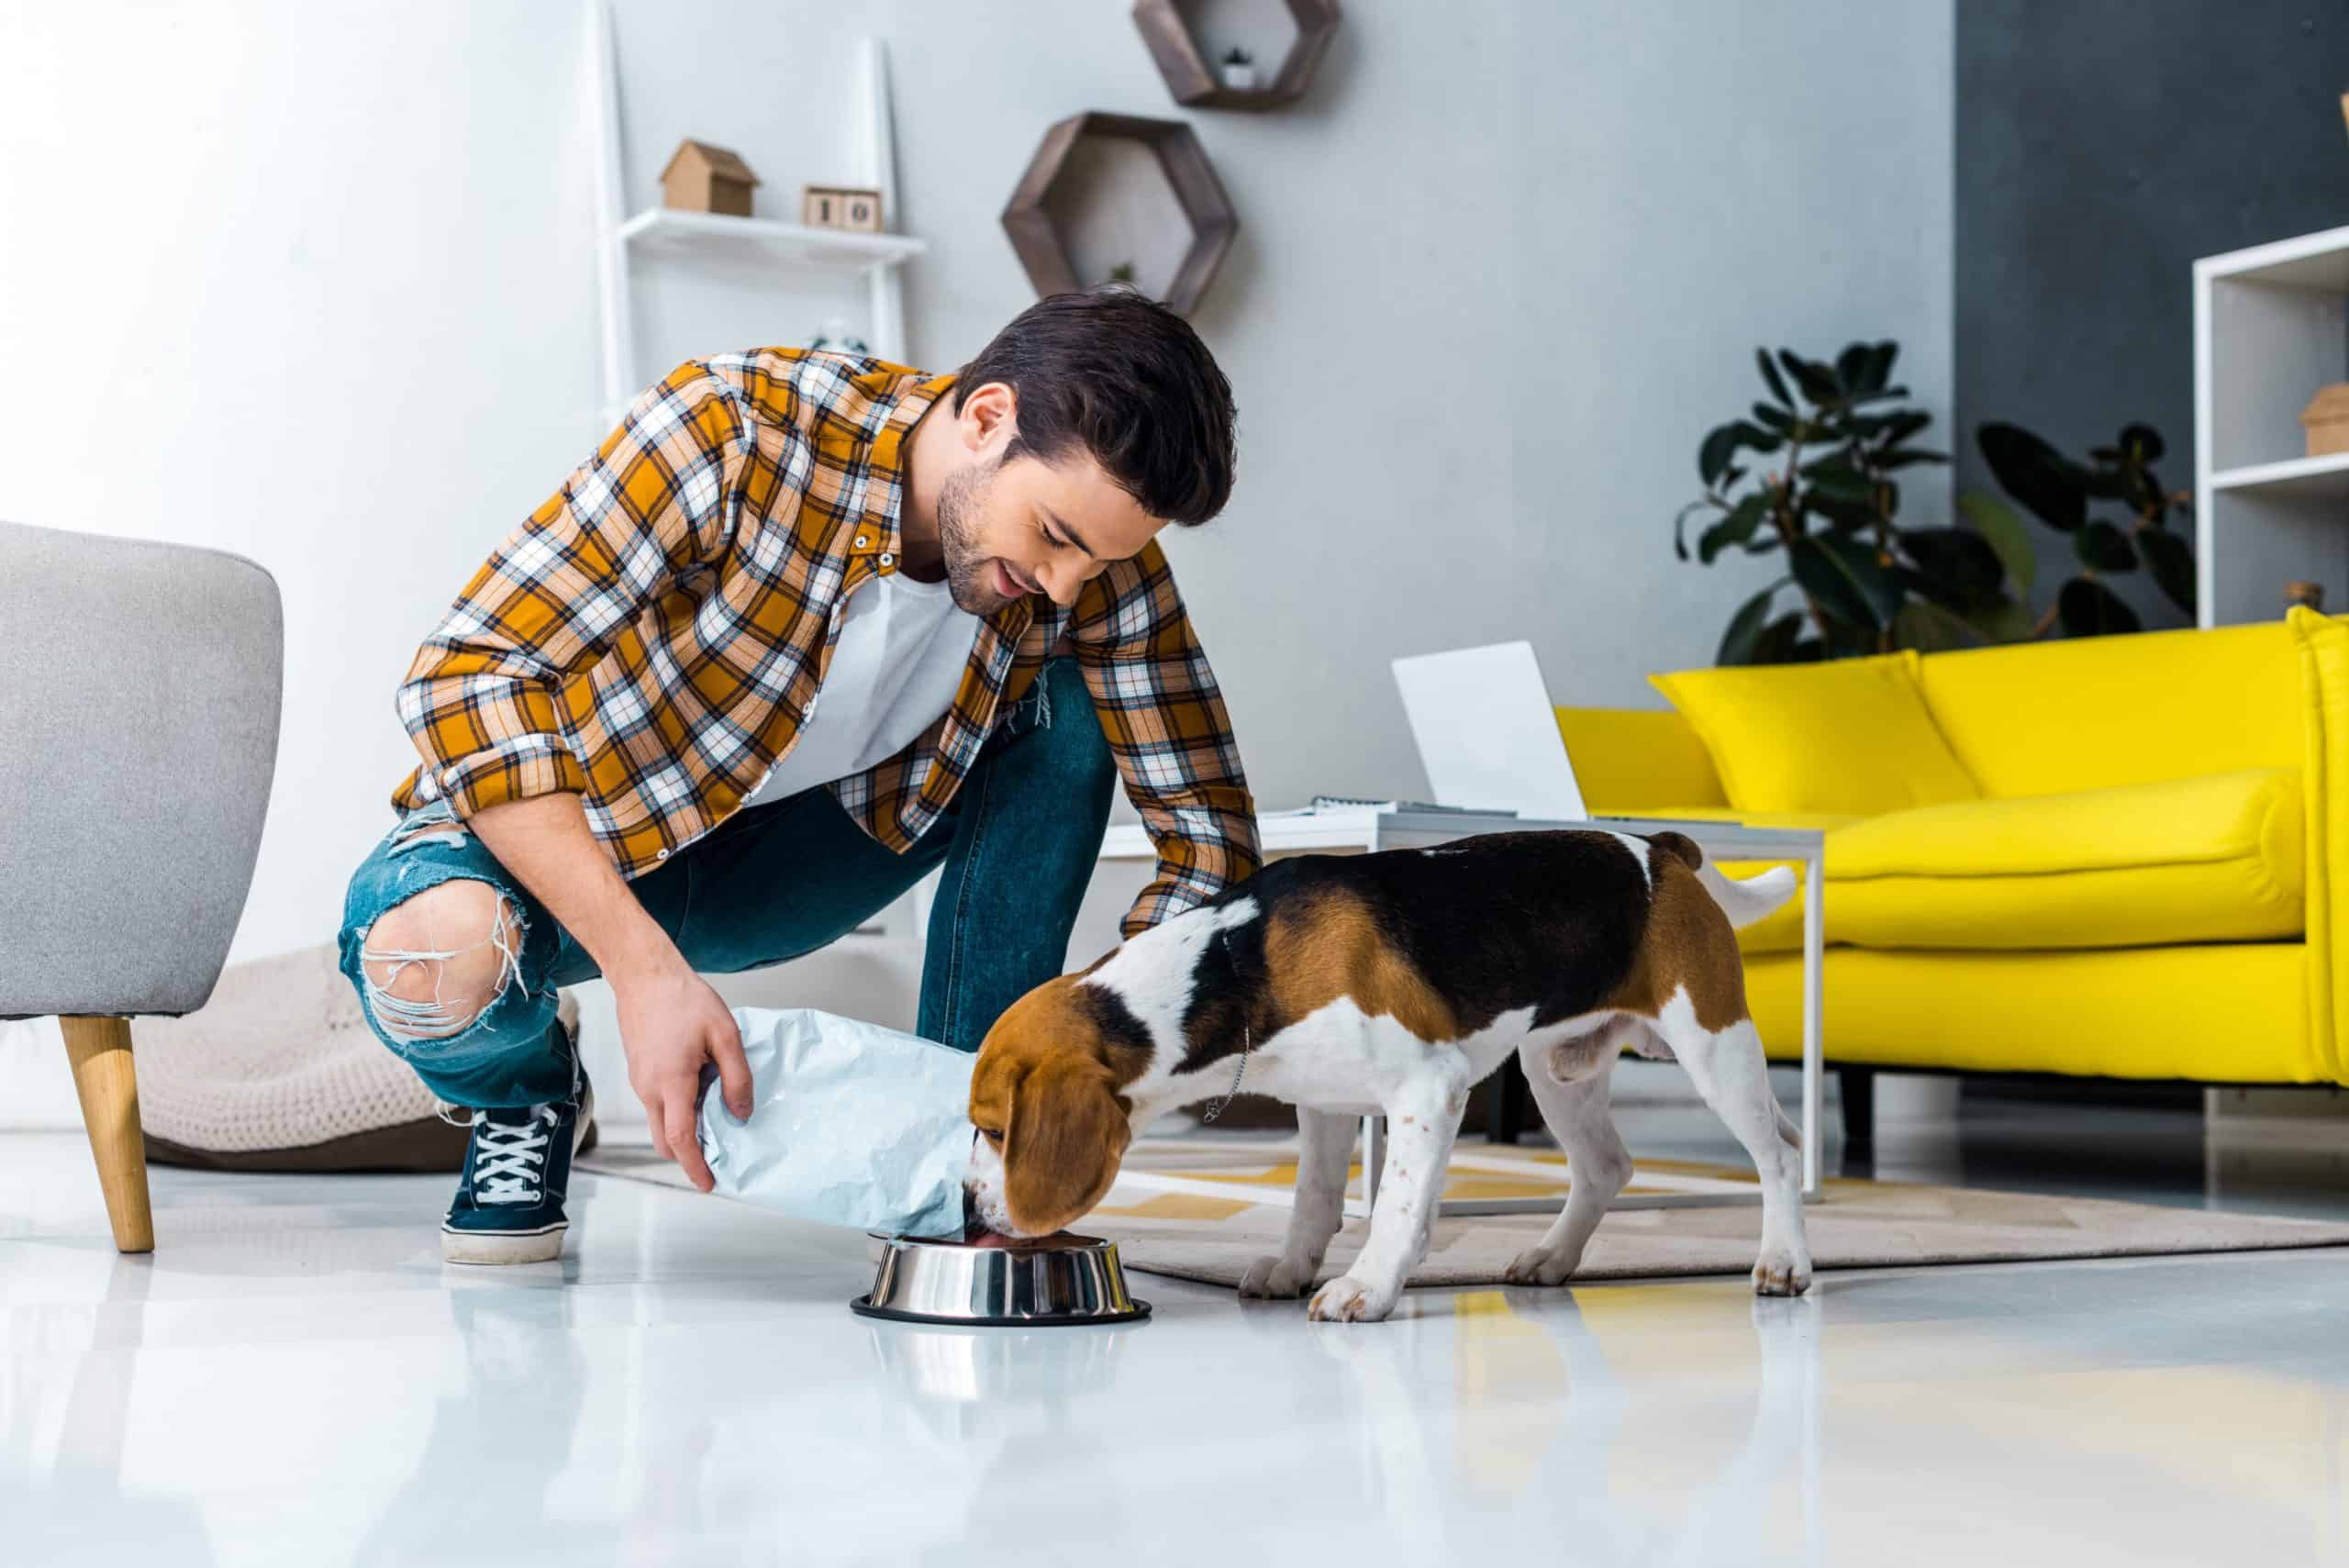 Man feeds beagle. Be aware of foods your dog should avoid eating because they are toxic and could potentially cause choking, weakness, or death.